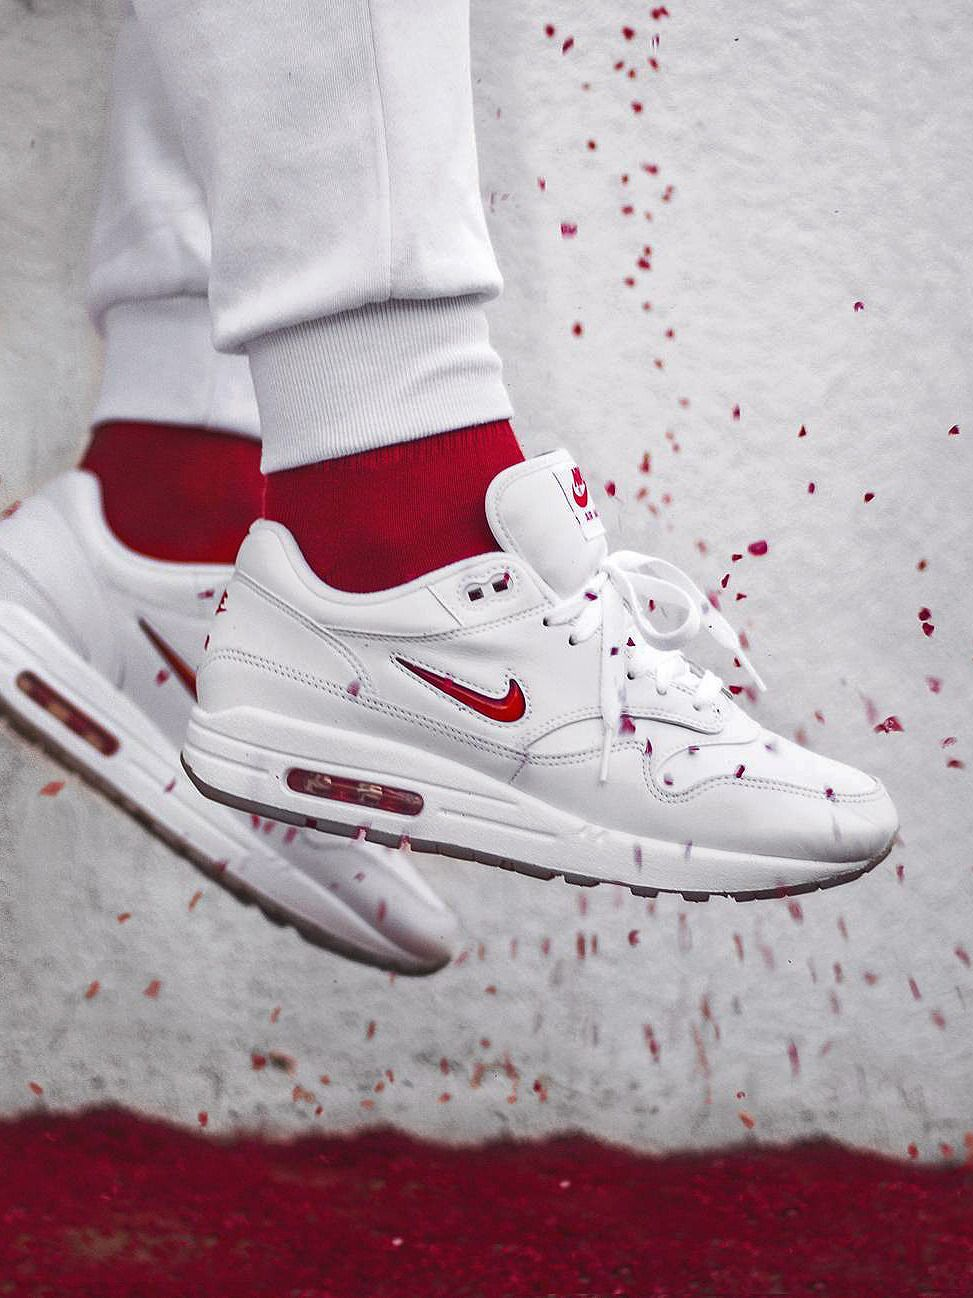 Nike Air Max 1 Jewel 'Rare Ruby' 2017 (by – Sweetsoles